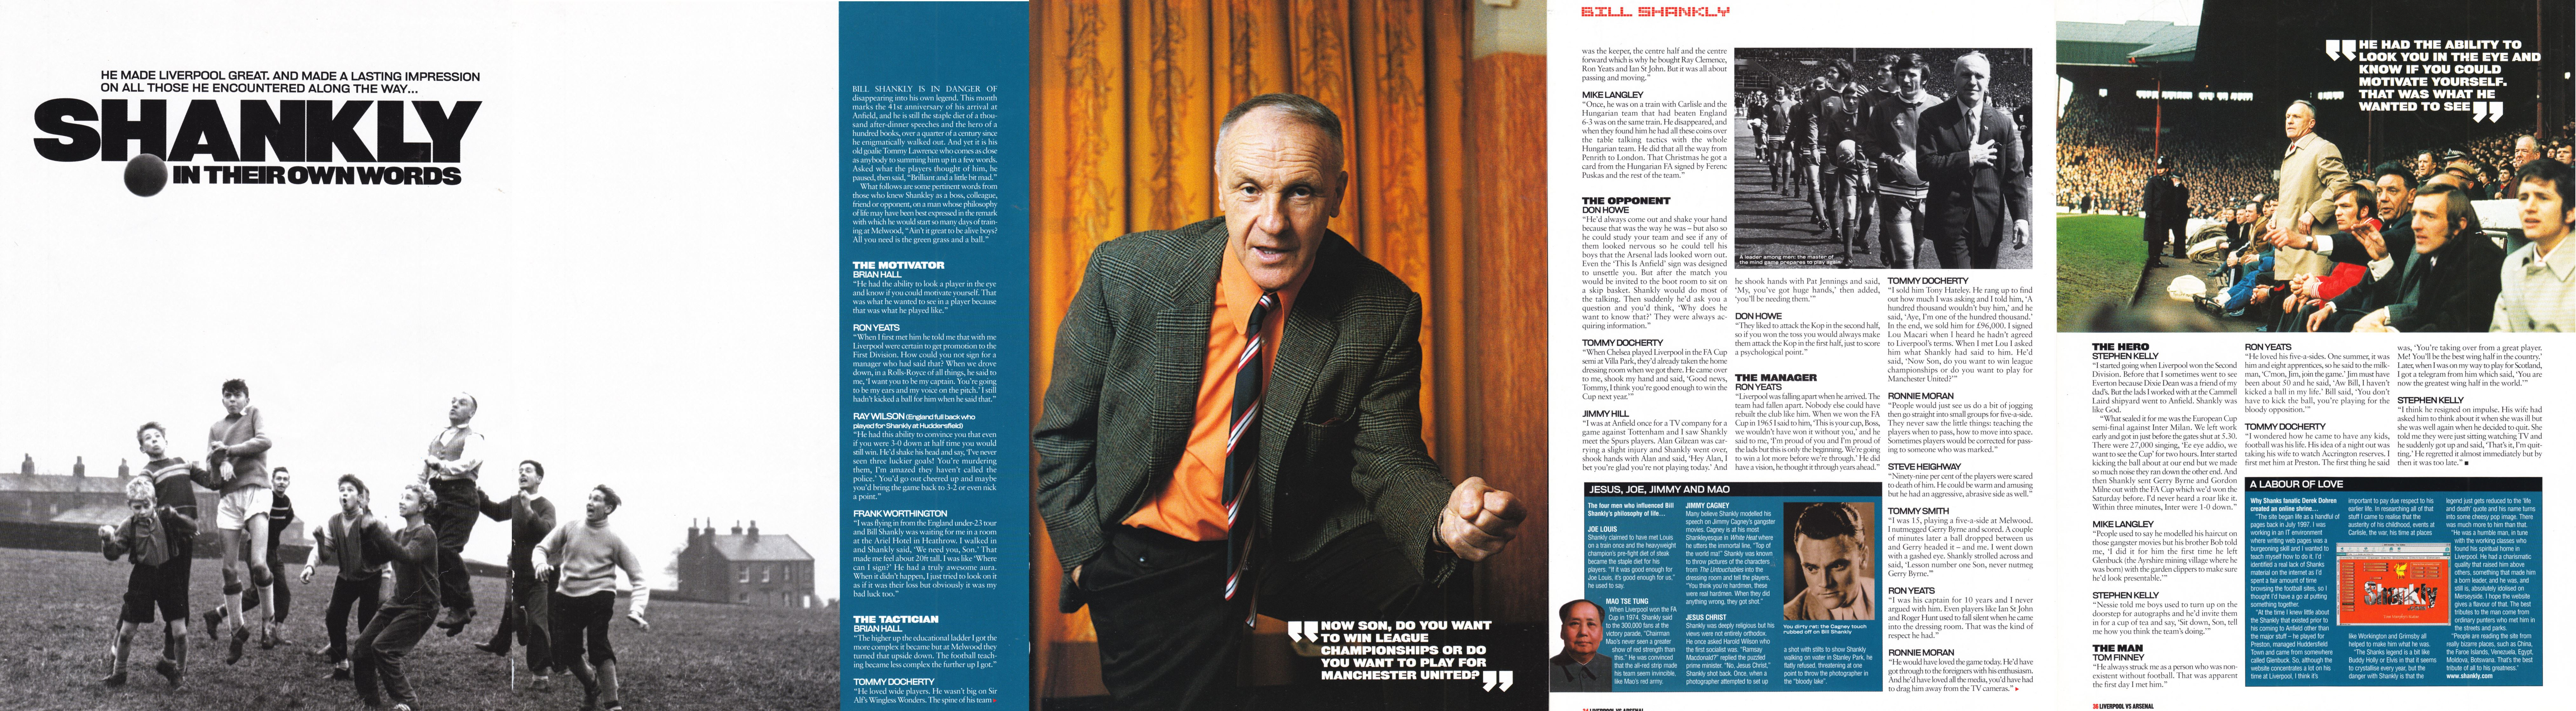 Shankly in their own words - LFC Official Matchday Magazine